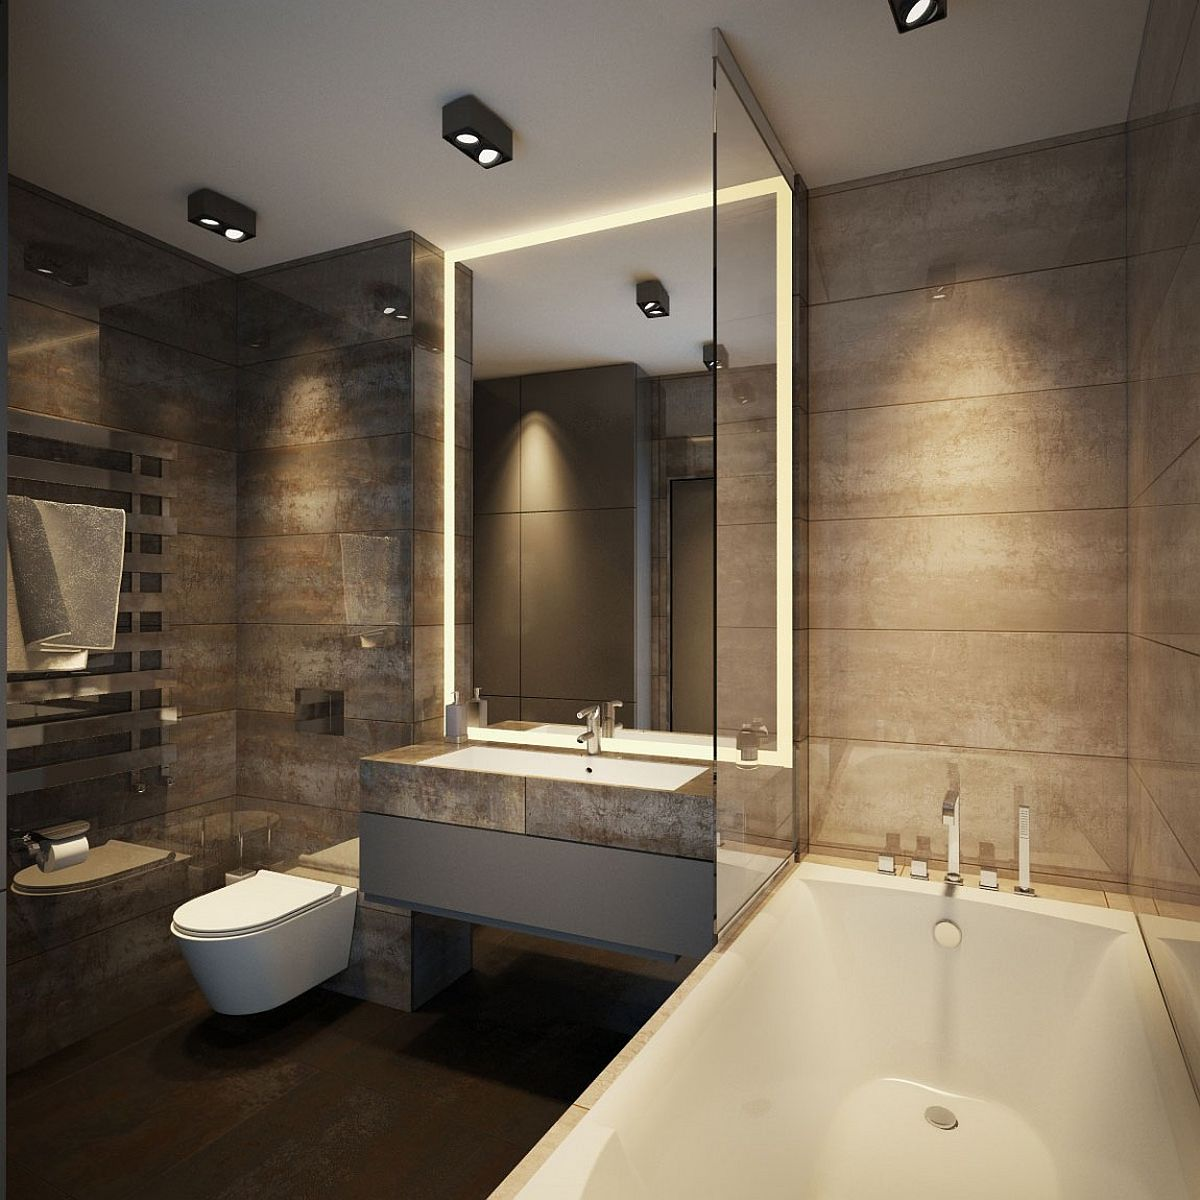 Apartment ernst in kiev inspired by posh hotel ambiance - Apartment bathroom designs ...